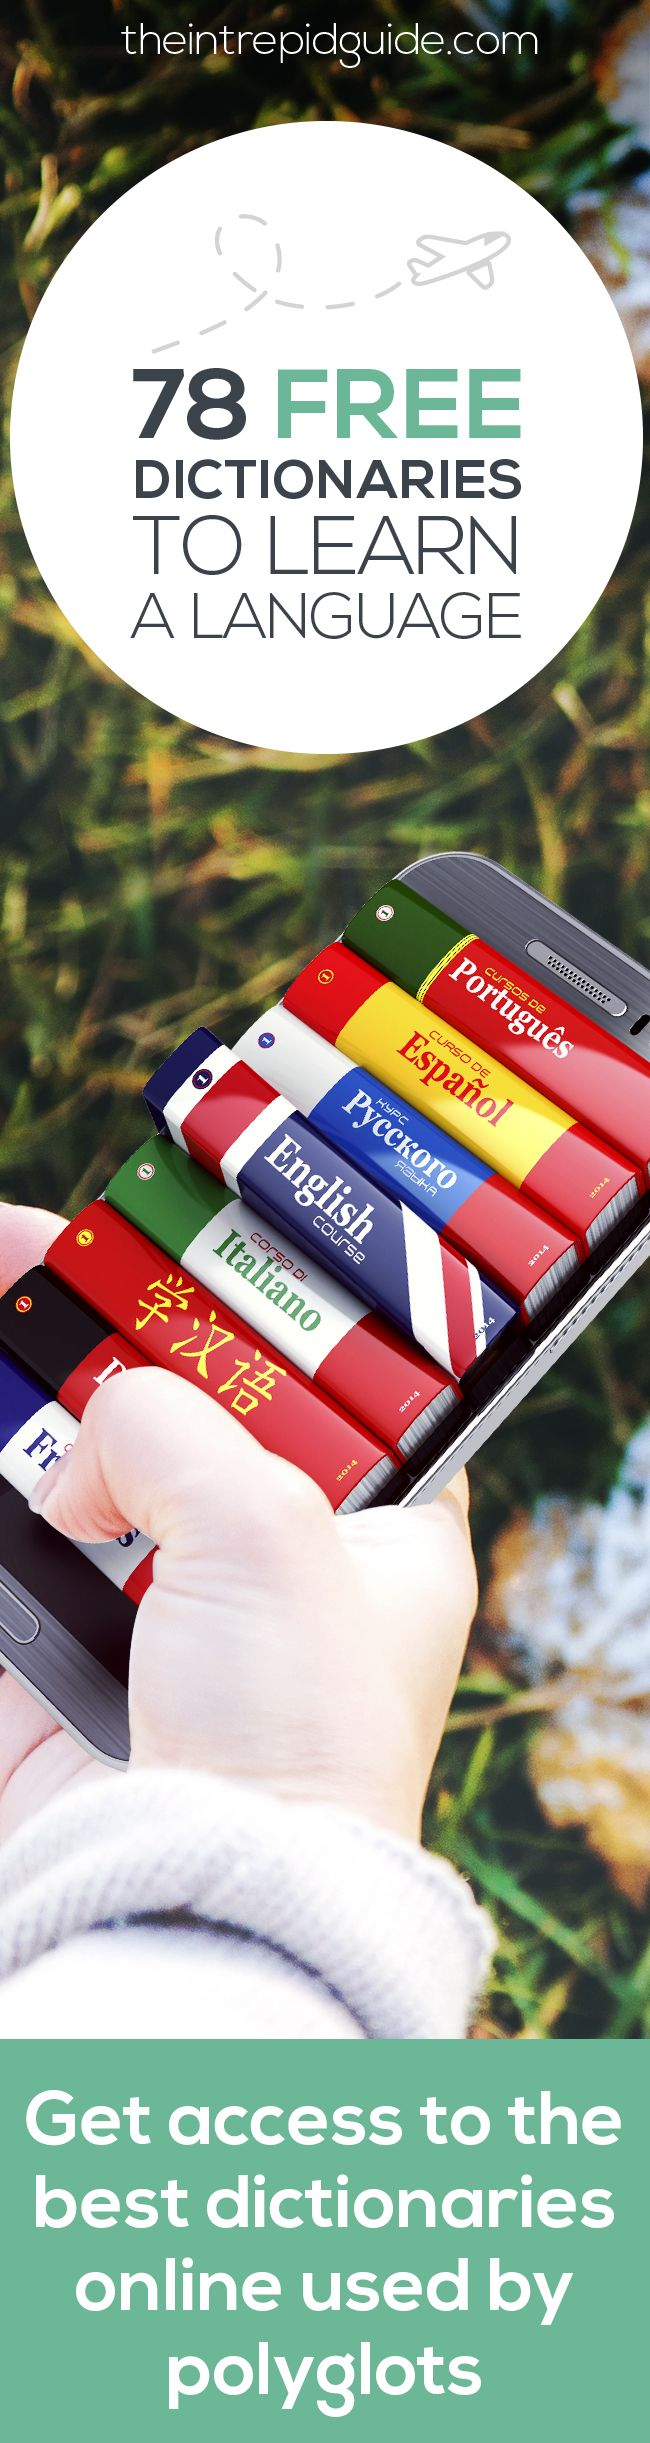 Want to Learn a Language Fast Like a Polyglot? Then you need these 78 FREE dictionaries